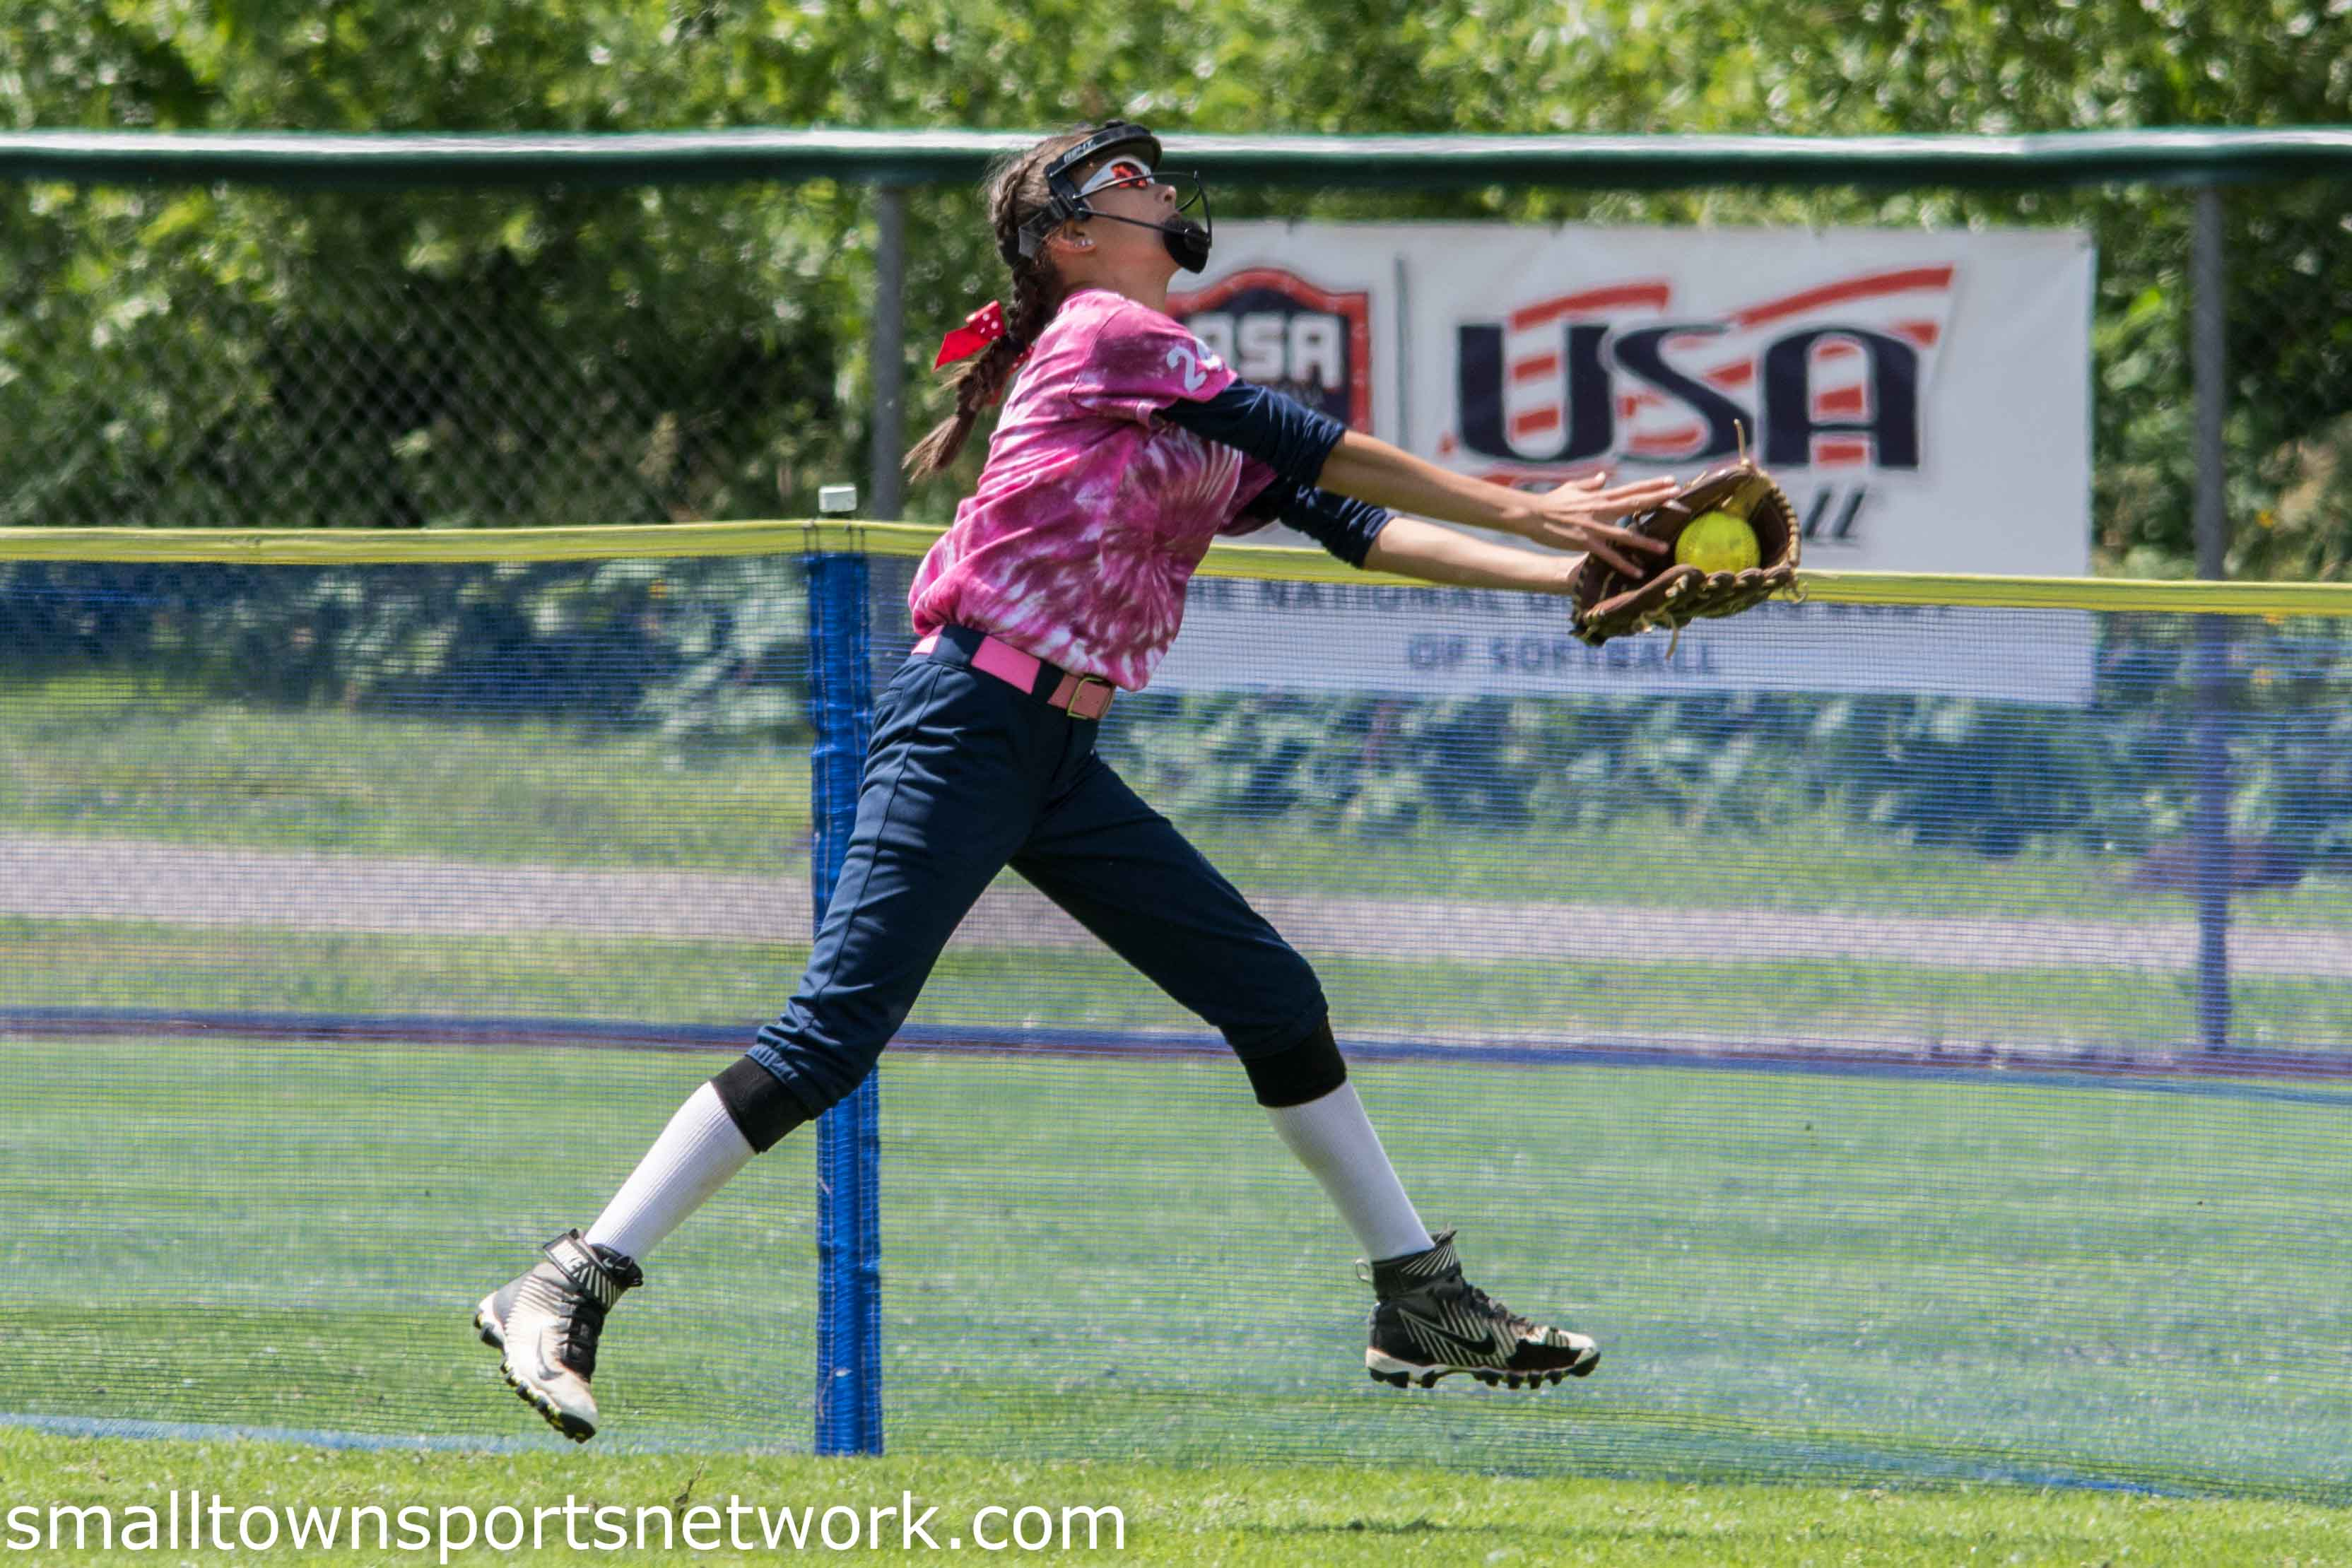 Reach for the Stars Softball Tournament